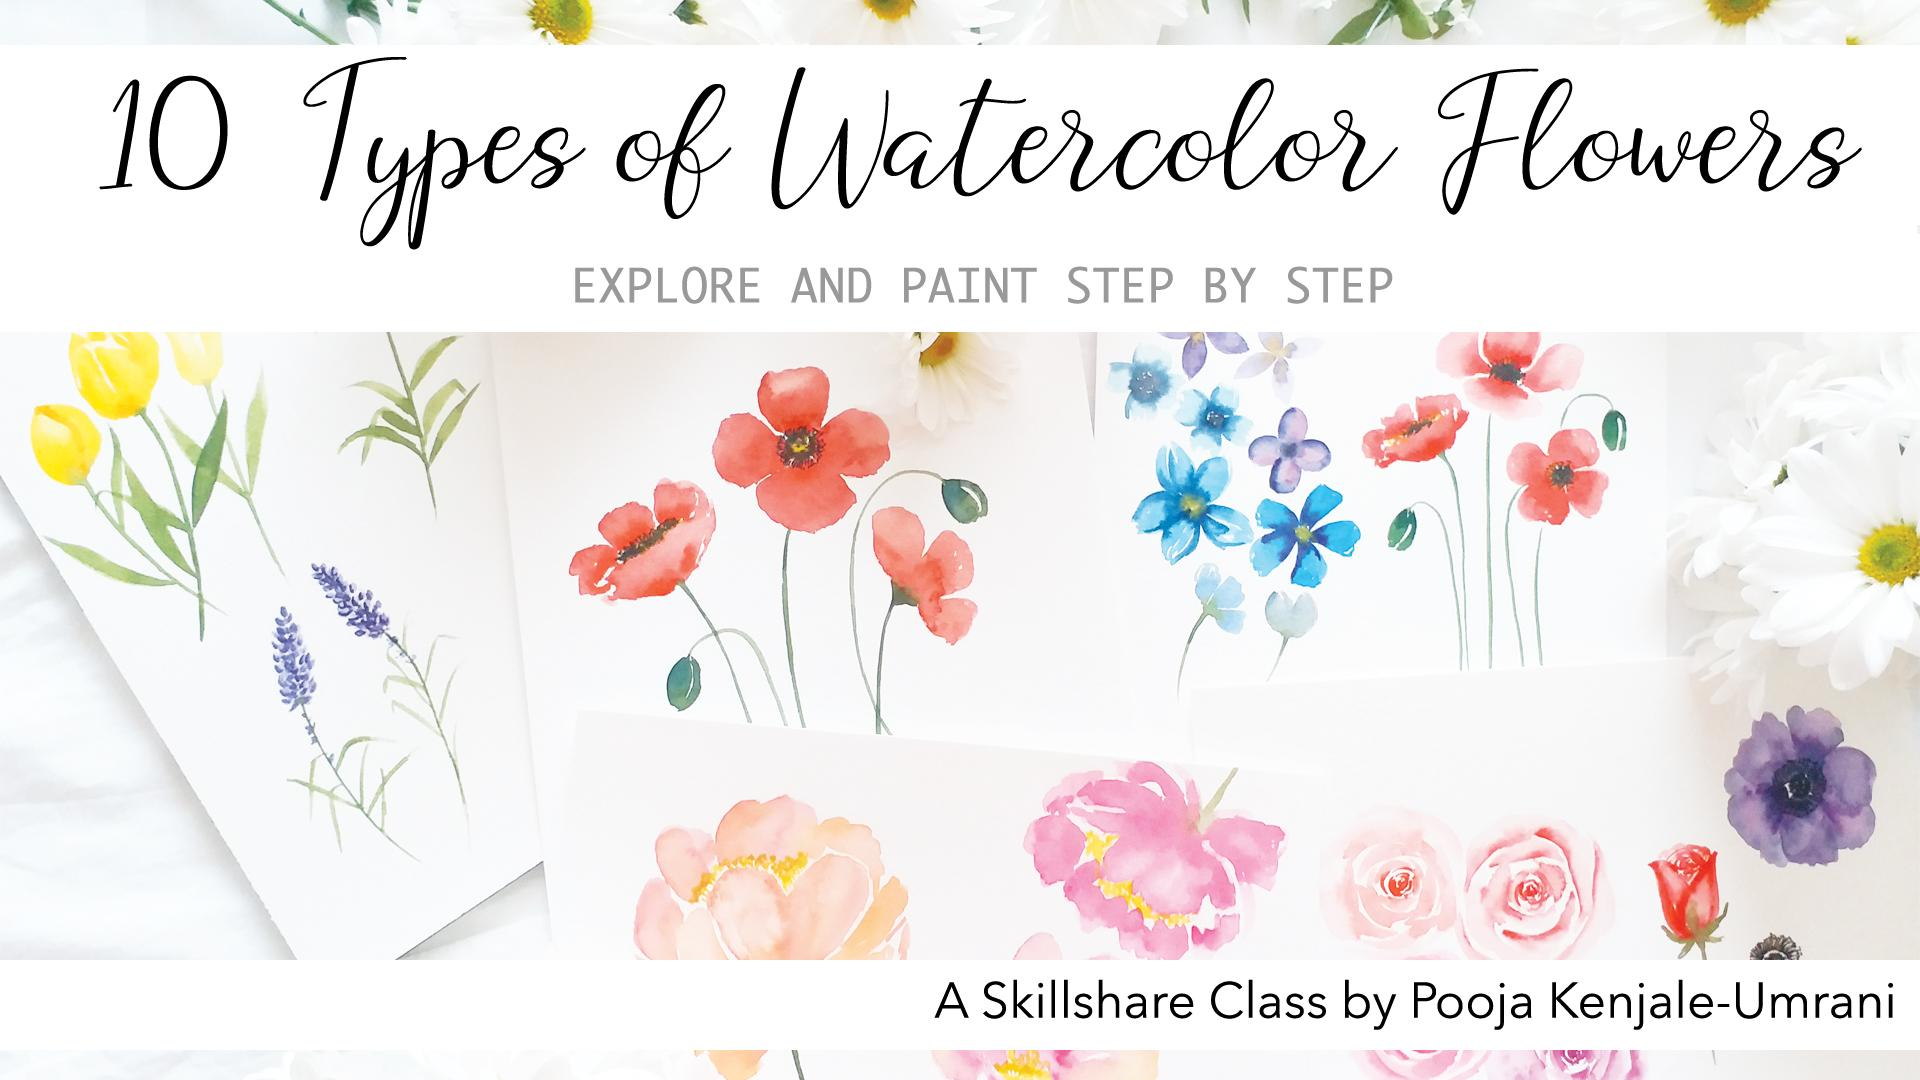 10 Types Of Watercolor Flowers Explore And Paint Step By Step Pooja Kenjale Umrani Skillshare